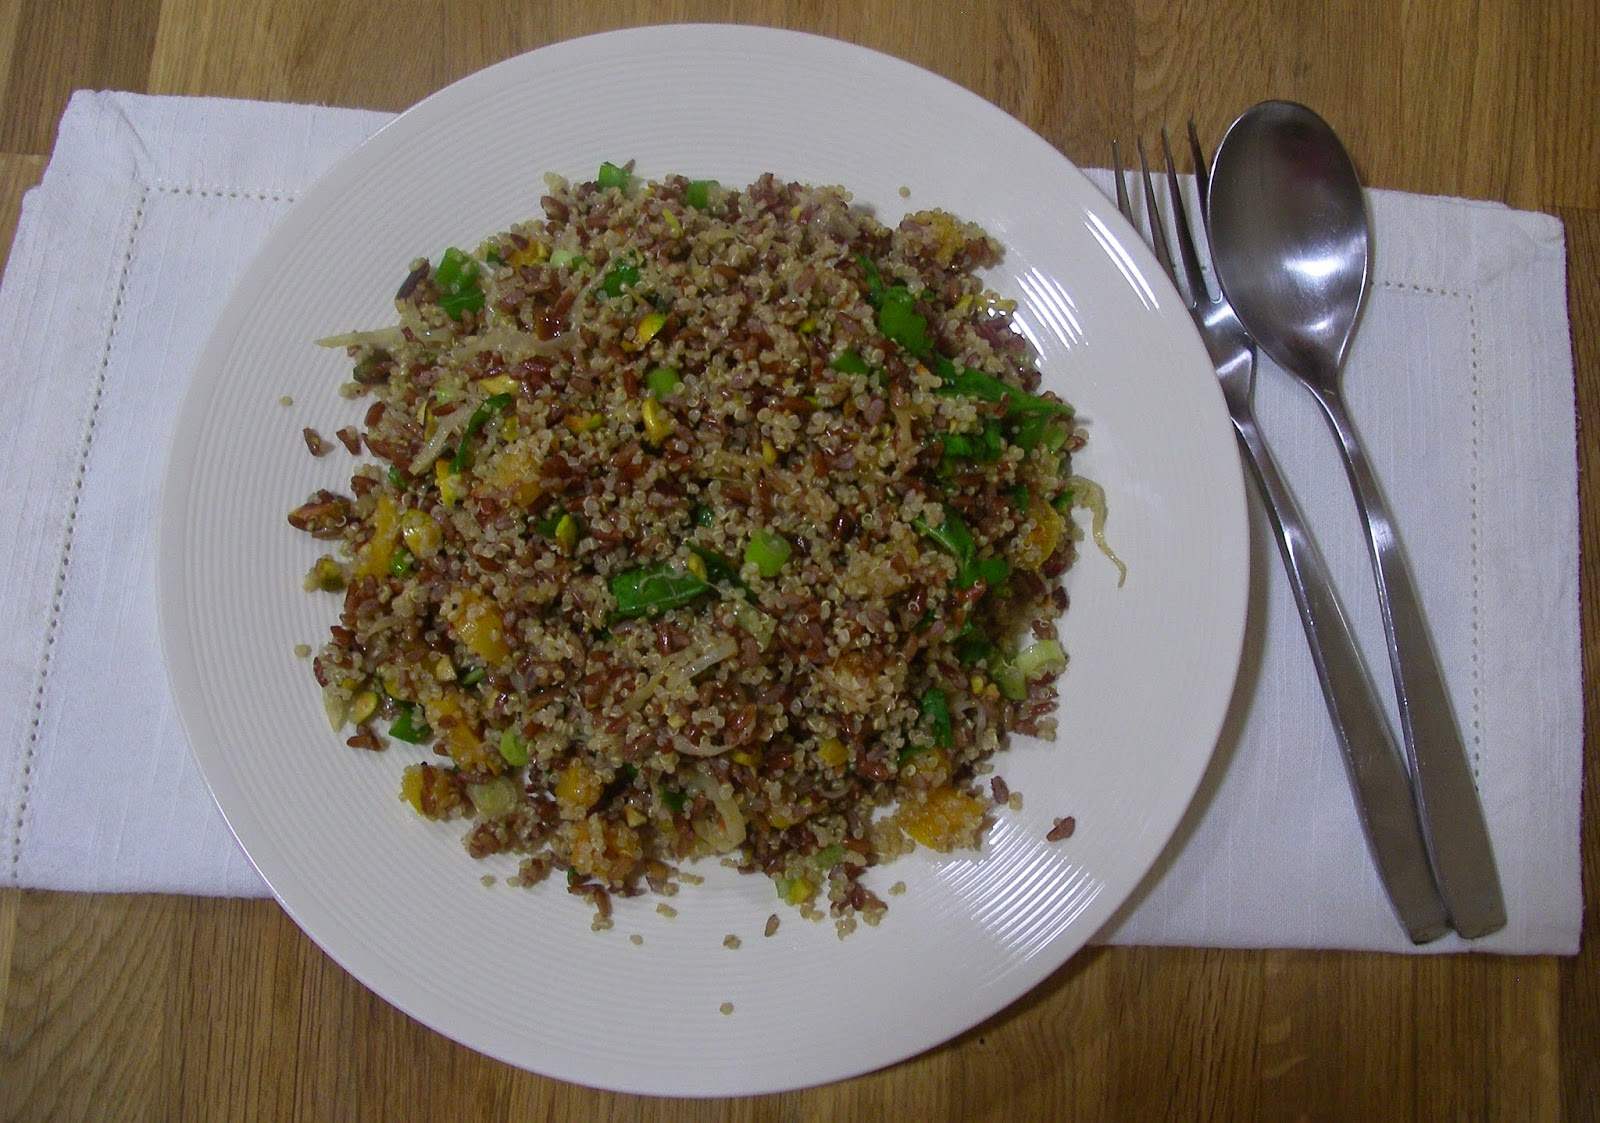 Camargue red riceand quinoa with orange, dried apricots and pistachios